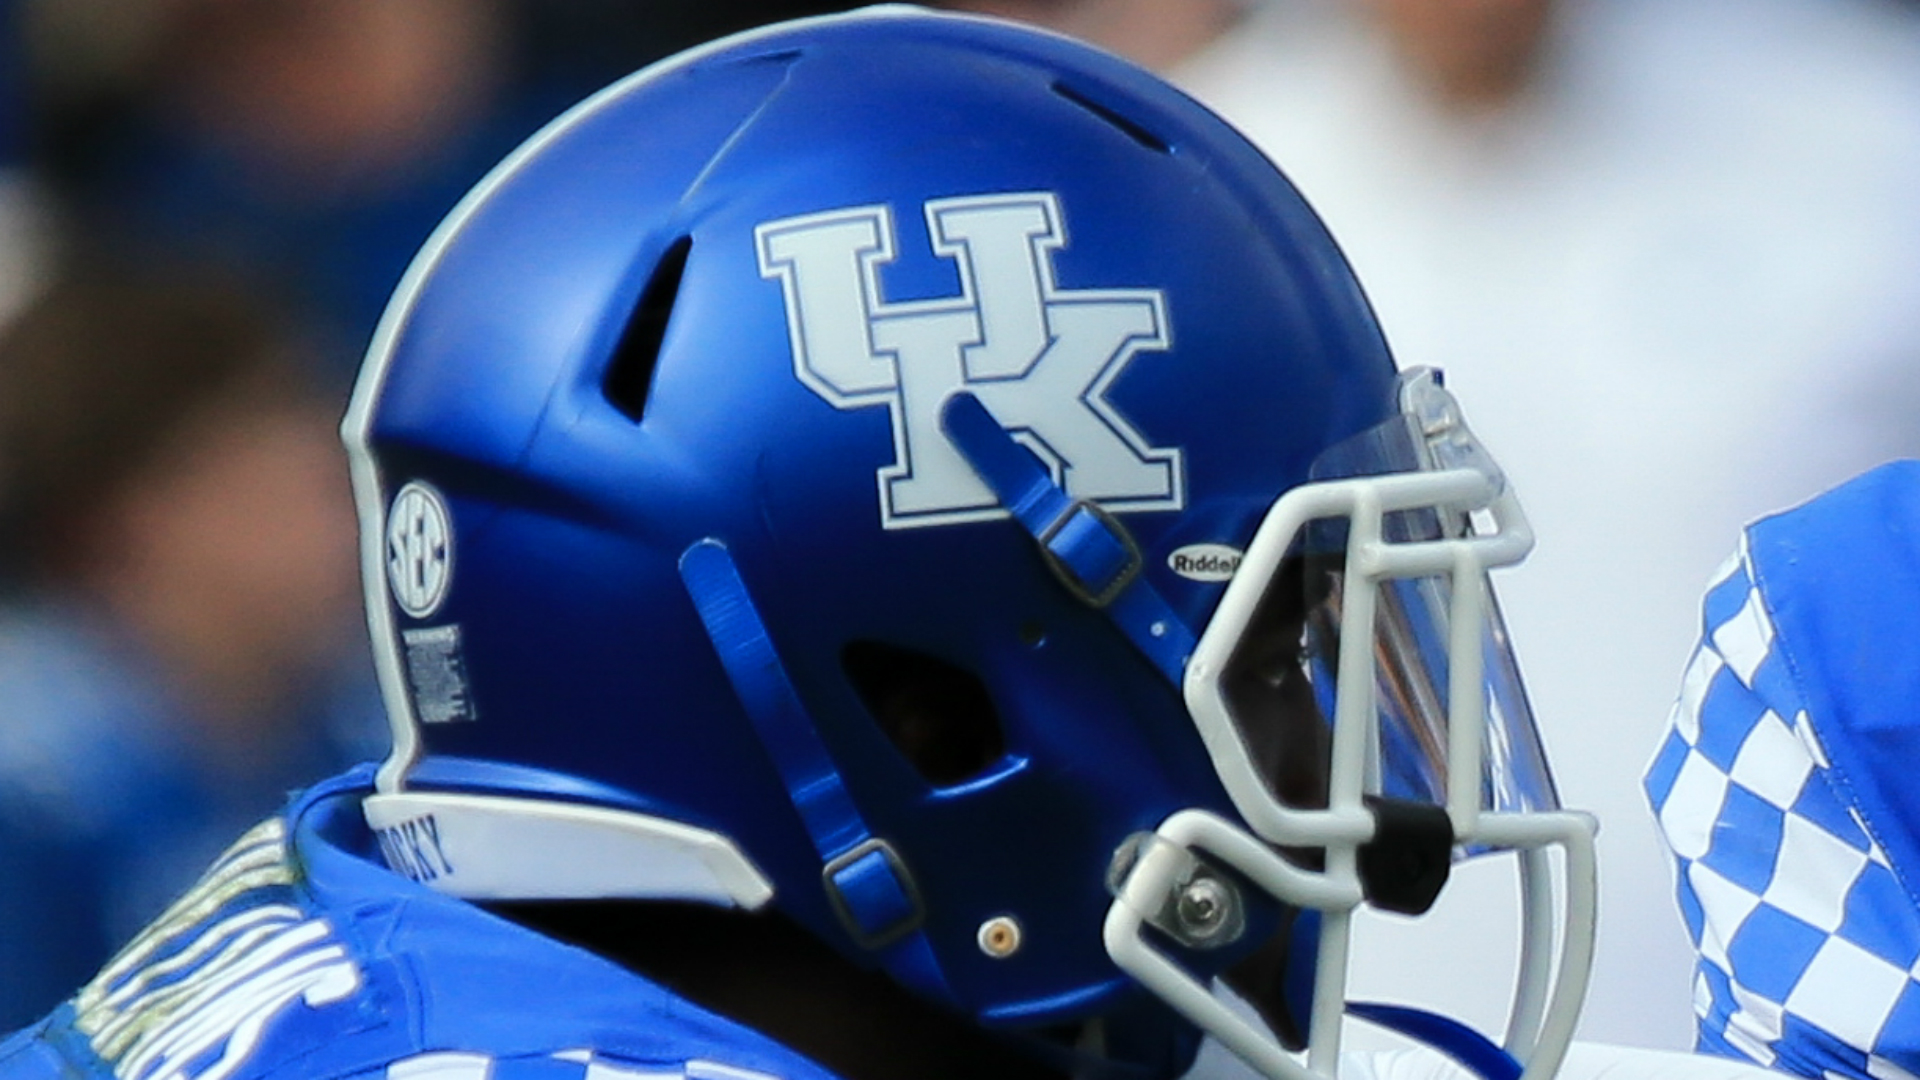 Kentucky avoids upset, beats EKU 27-16